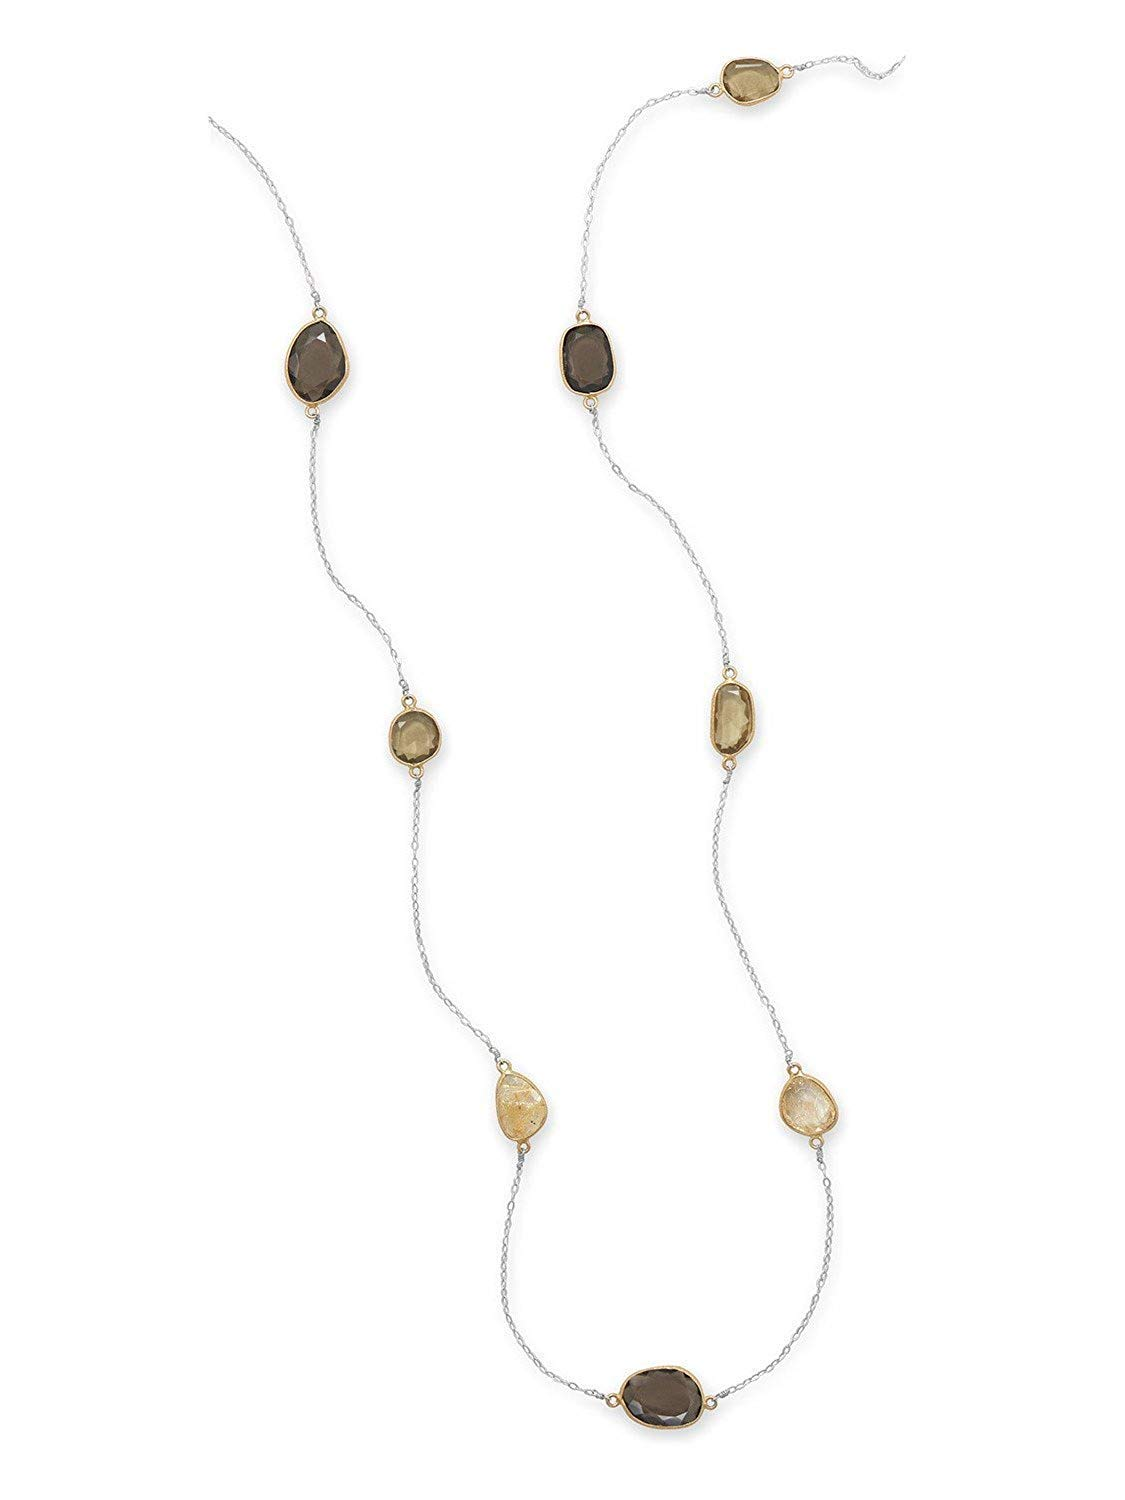 Golden, Rutilated, and Smoky Quartz Necklace Gold-plated Sterling Silver